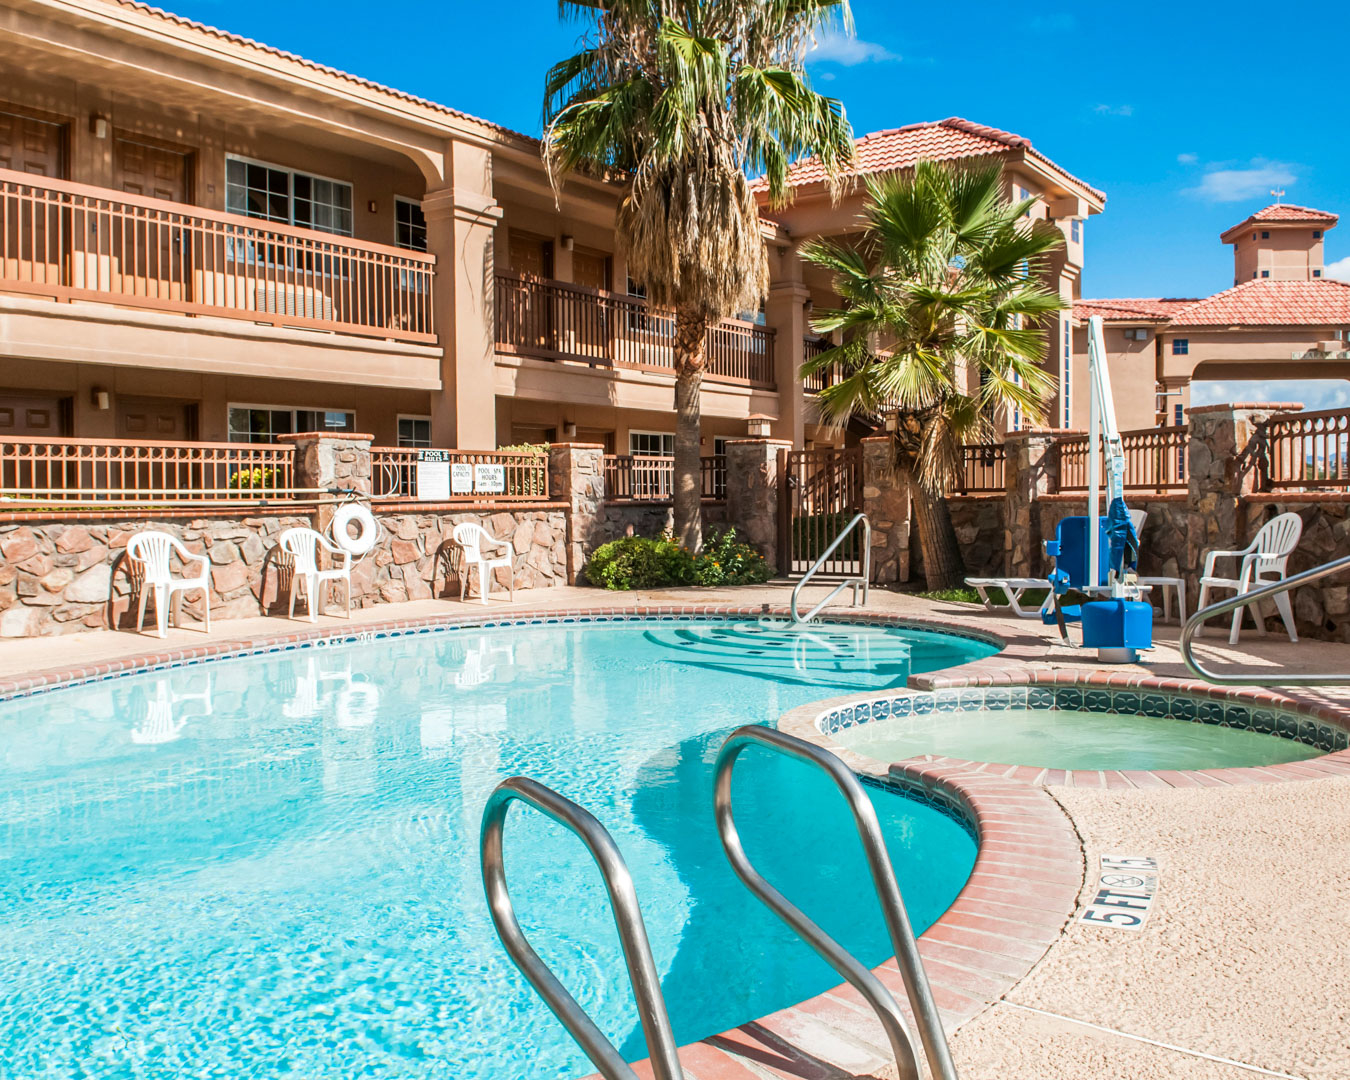 Quality Inn Amp Suites Las Cruces Nm Company Information